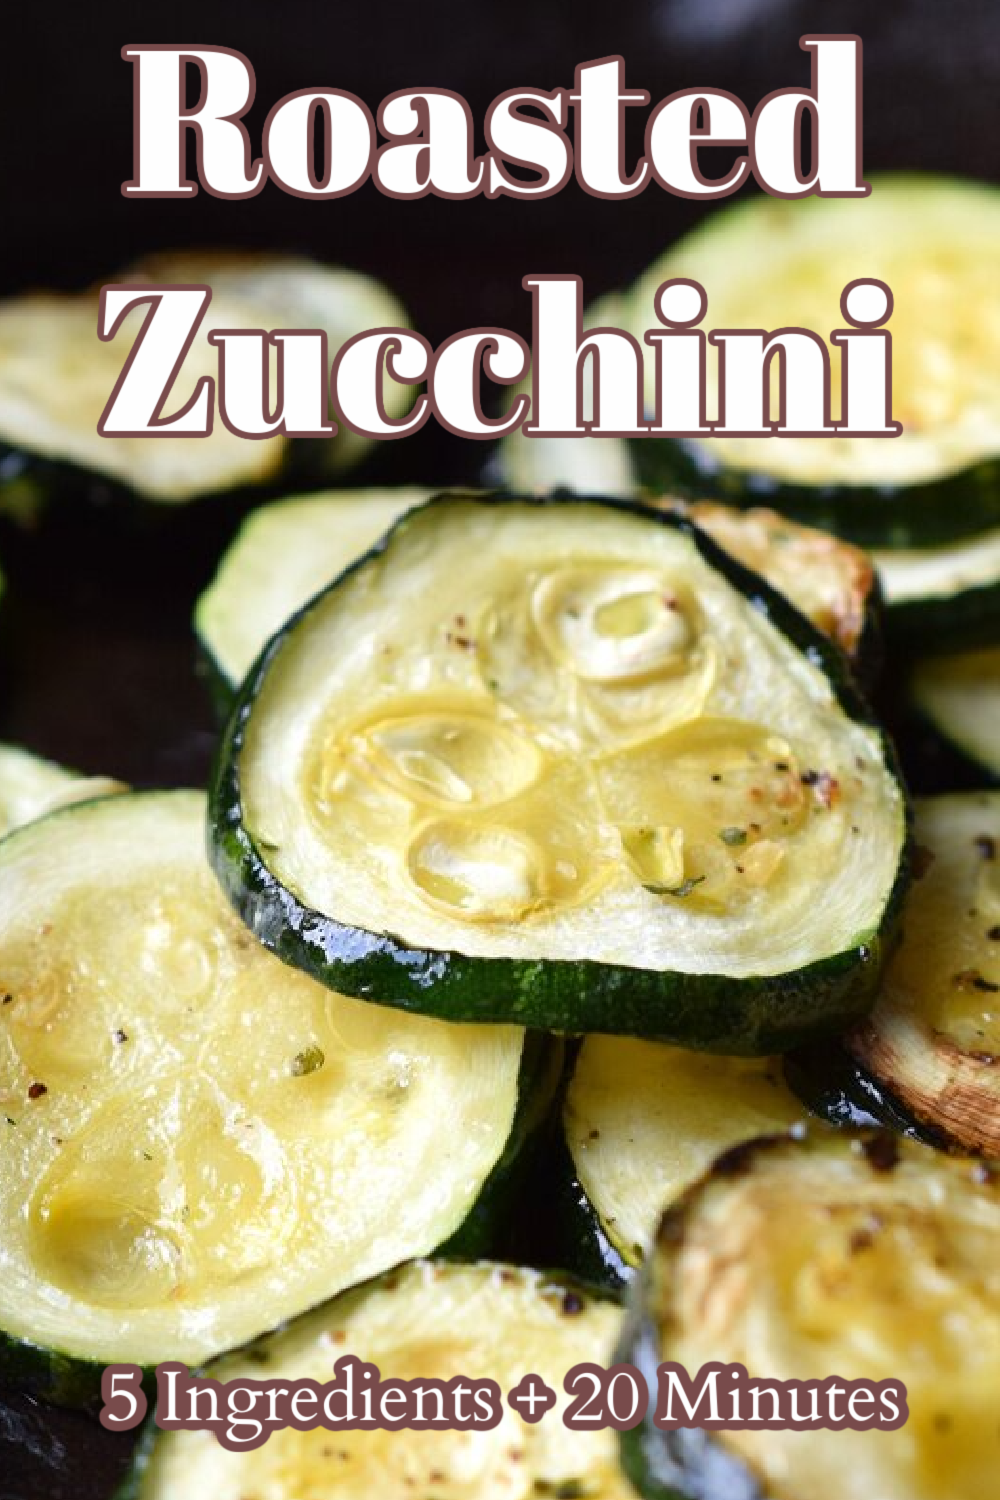 Roasted Zucchini - A quick and easy side dish made with just 5 ingredients in less than 20 minutes. This zucchini recipe is perfect to go with an easy weeknight meal or to serve during the holidays. Zucchini Recipe | Roasted Zucchini | Zucchini Side Dish